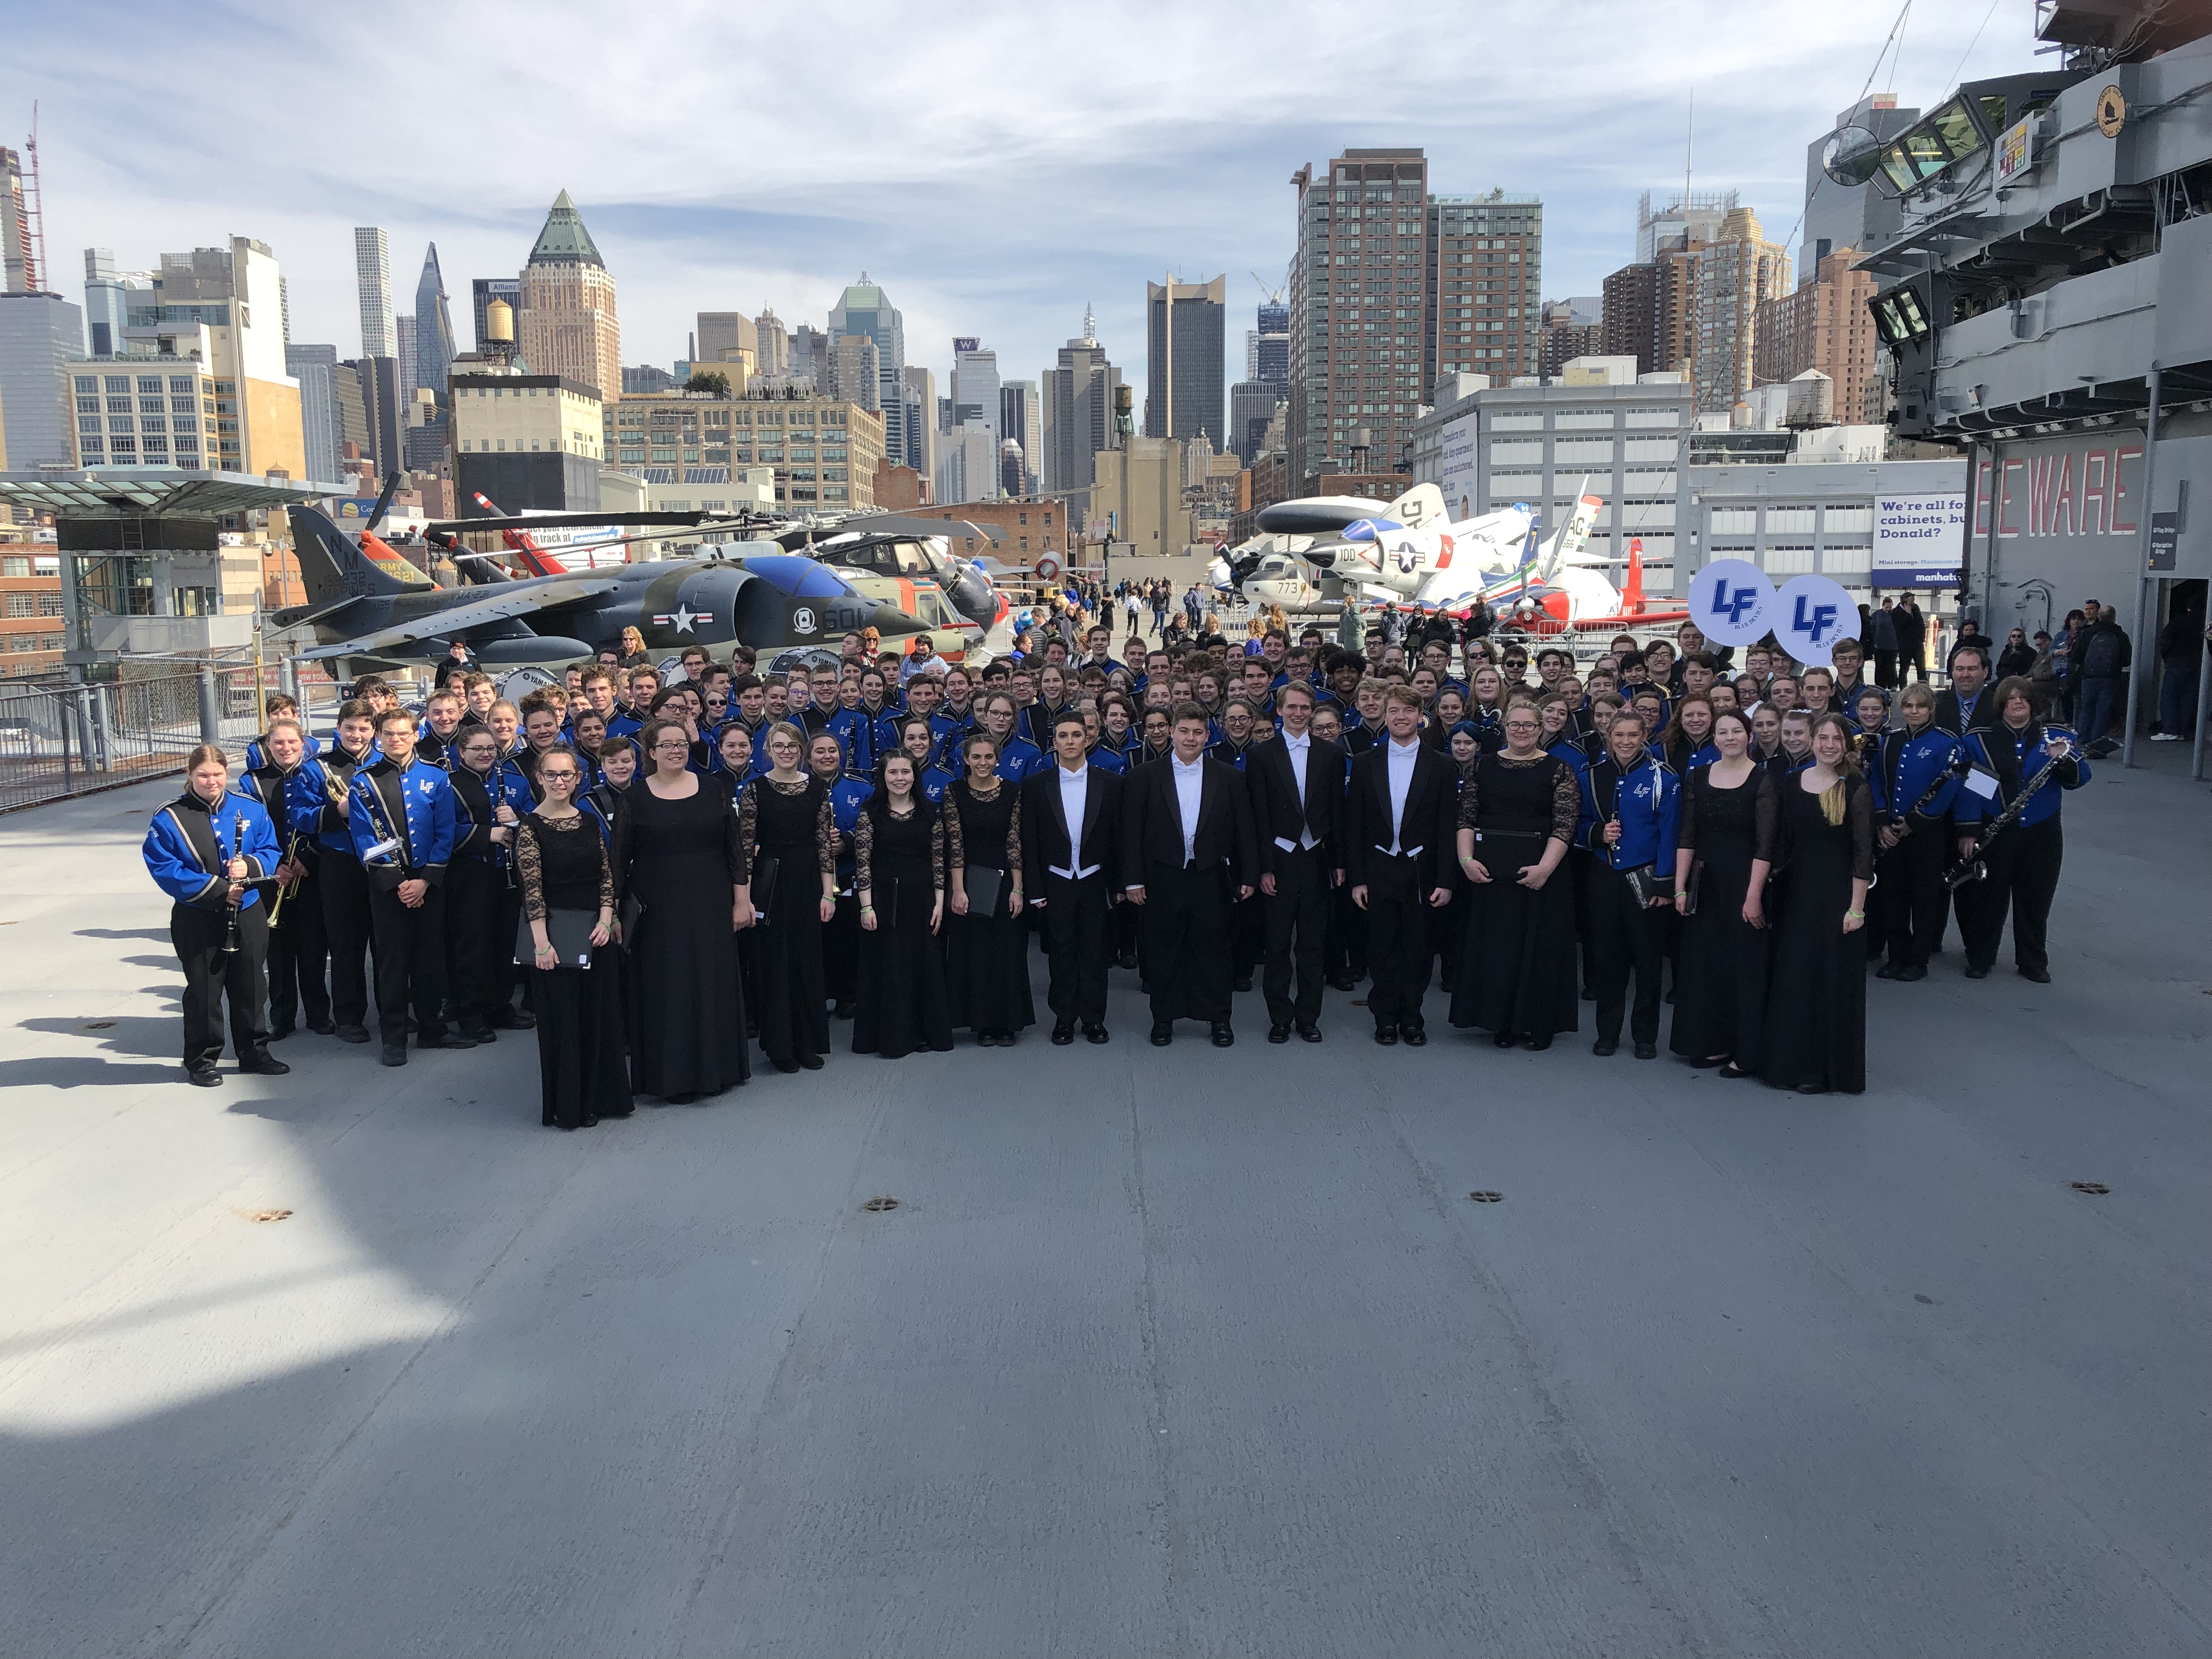 U.S.S. Intrepid Performance